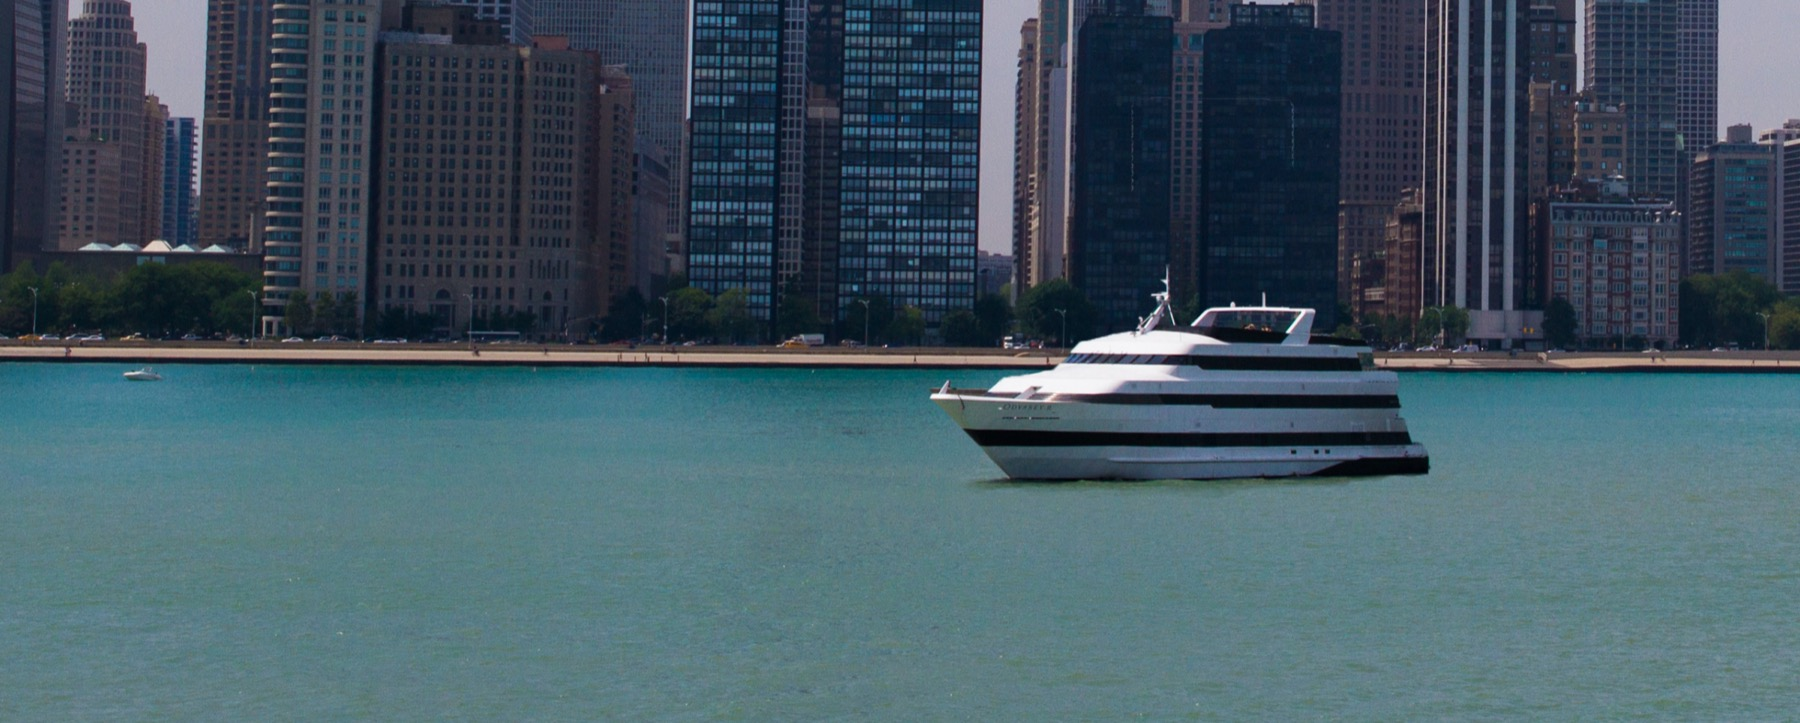 Chicago dinner cruises